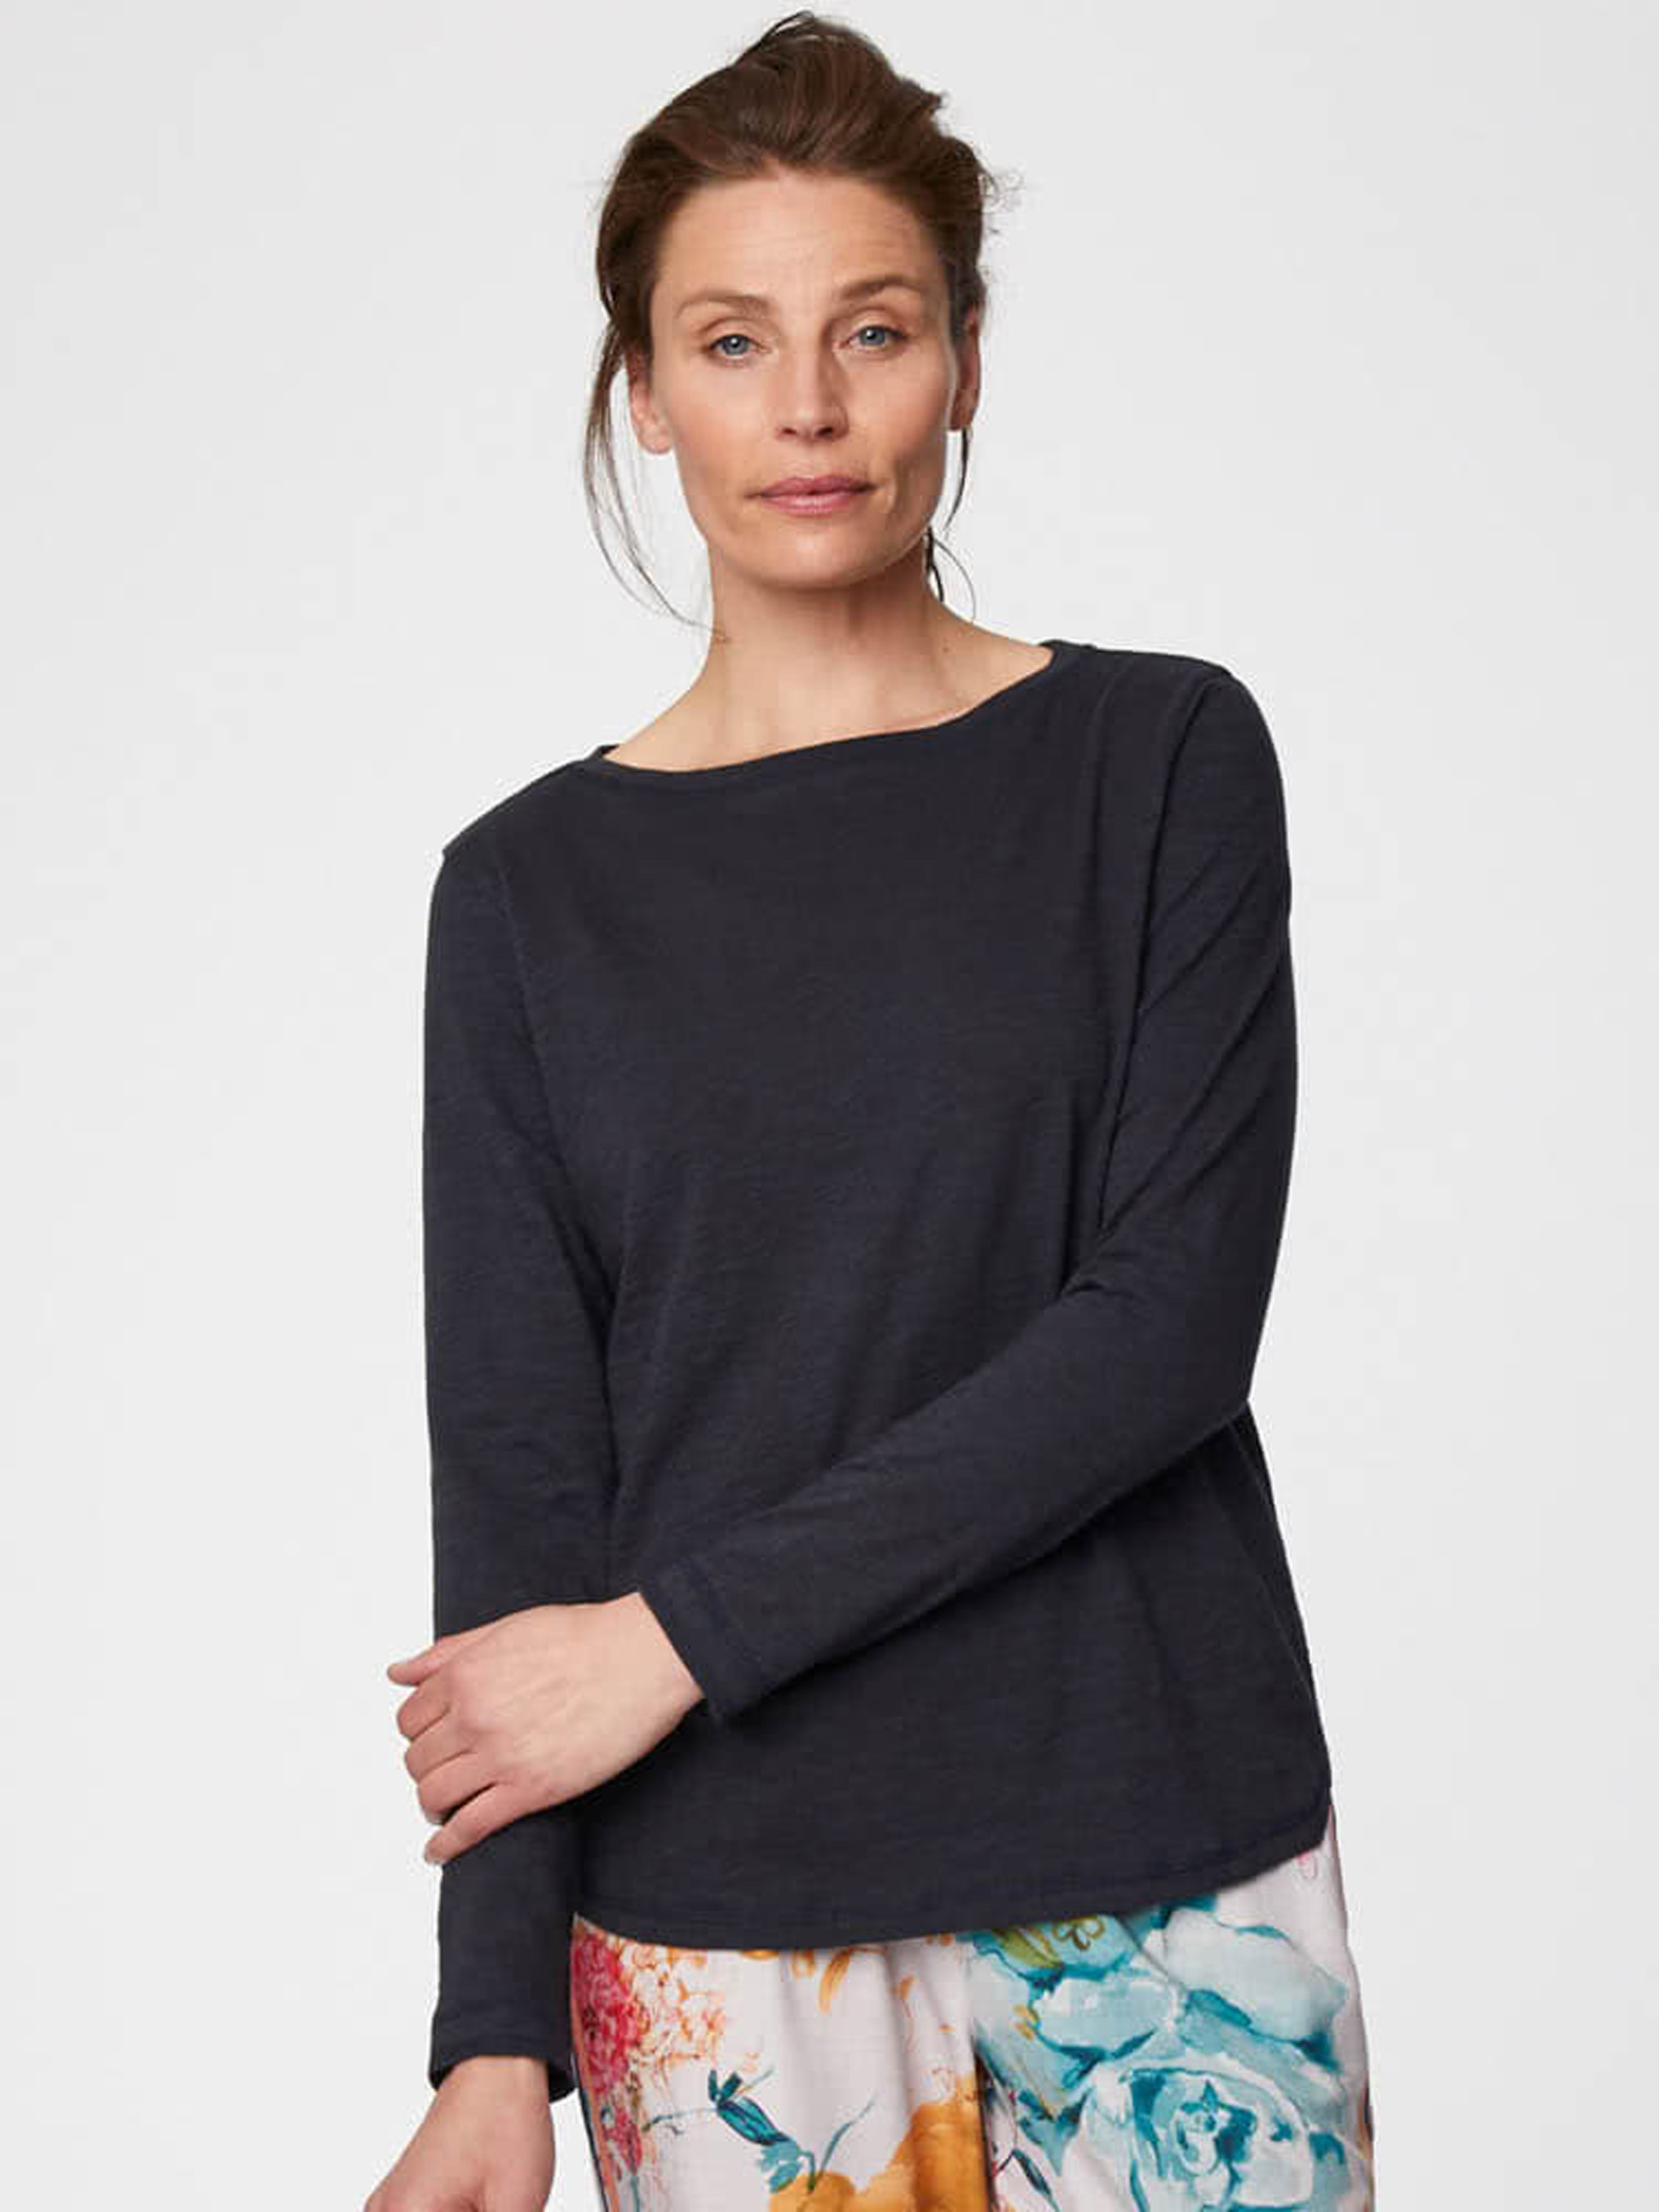 Fairtrade Organic Cotton Top